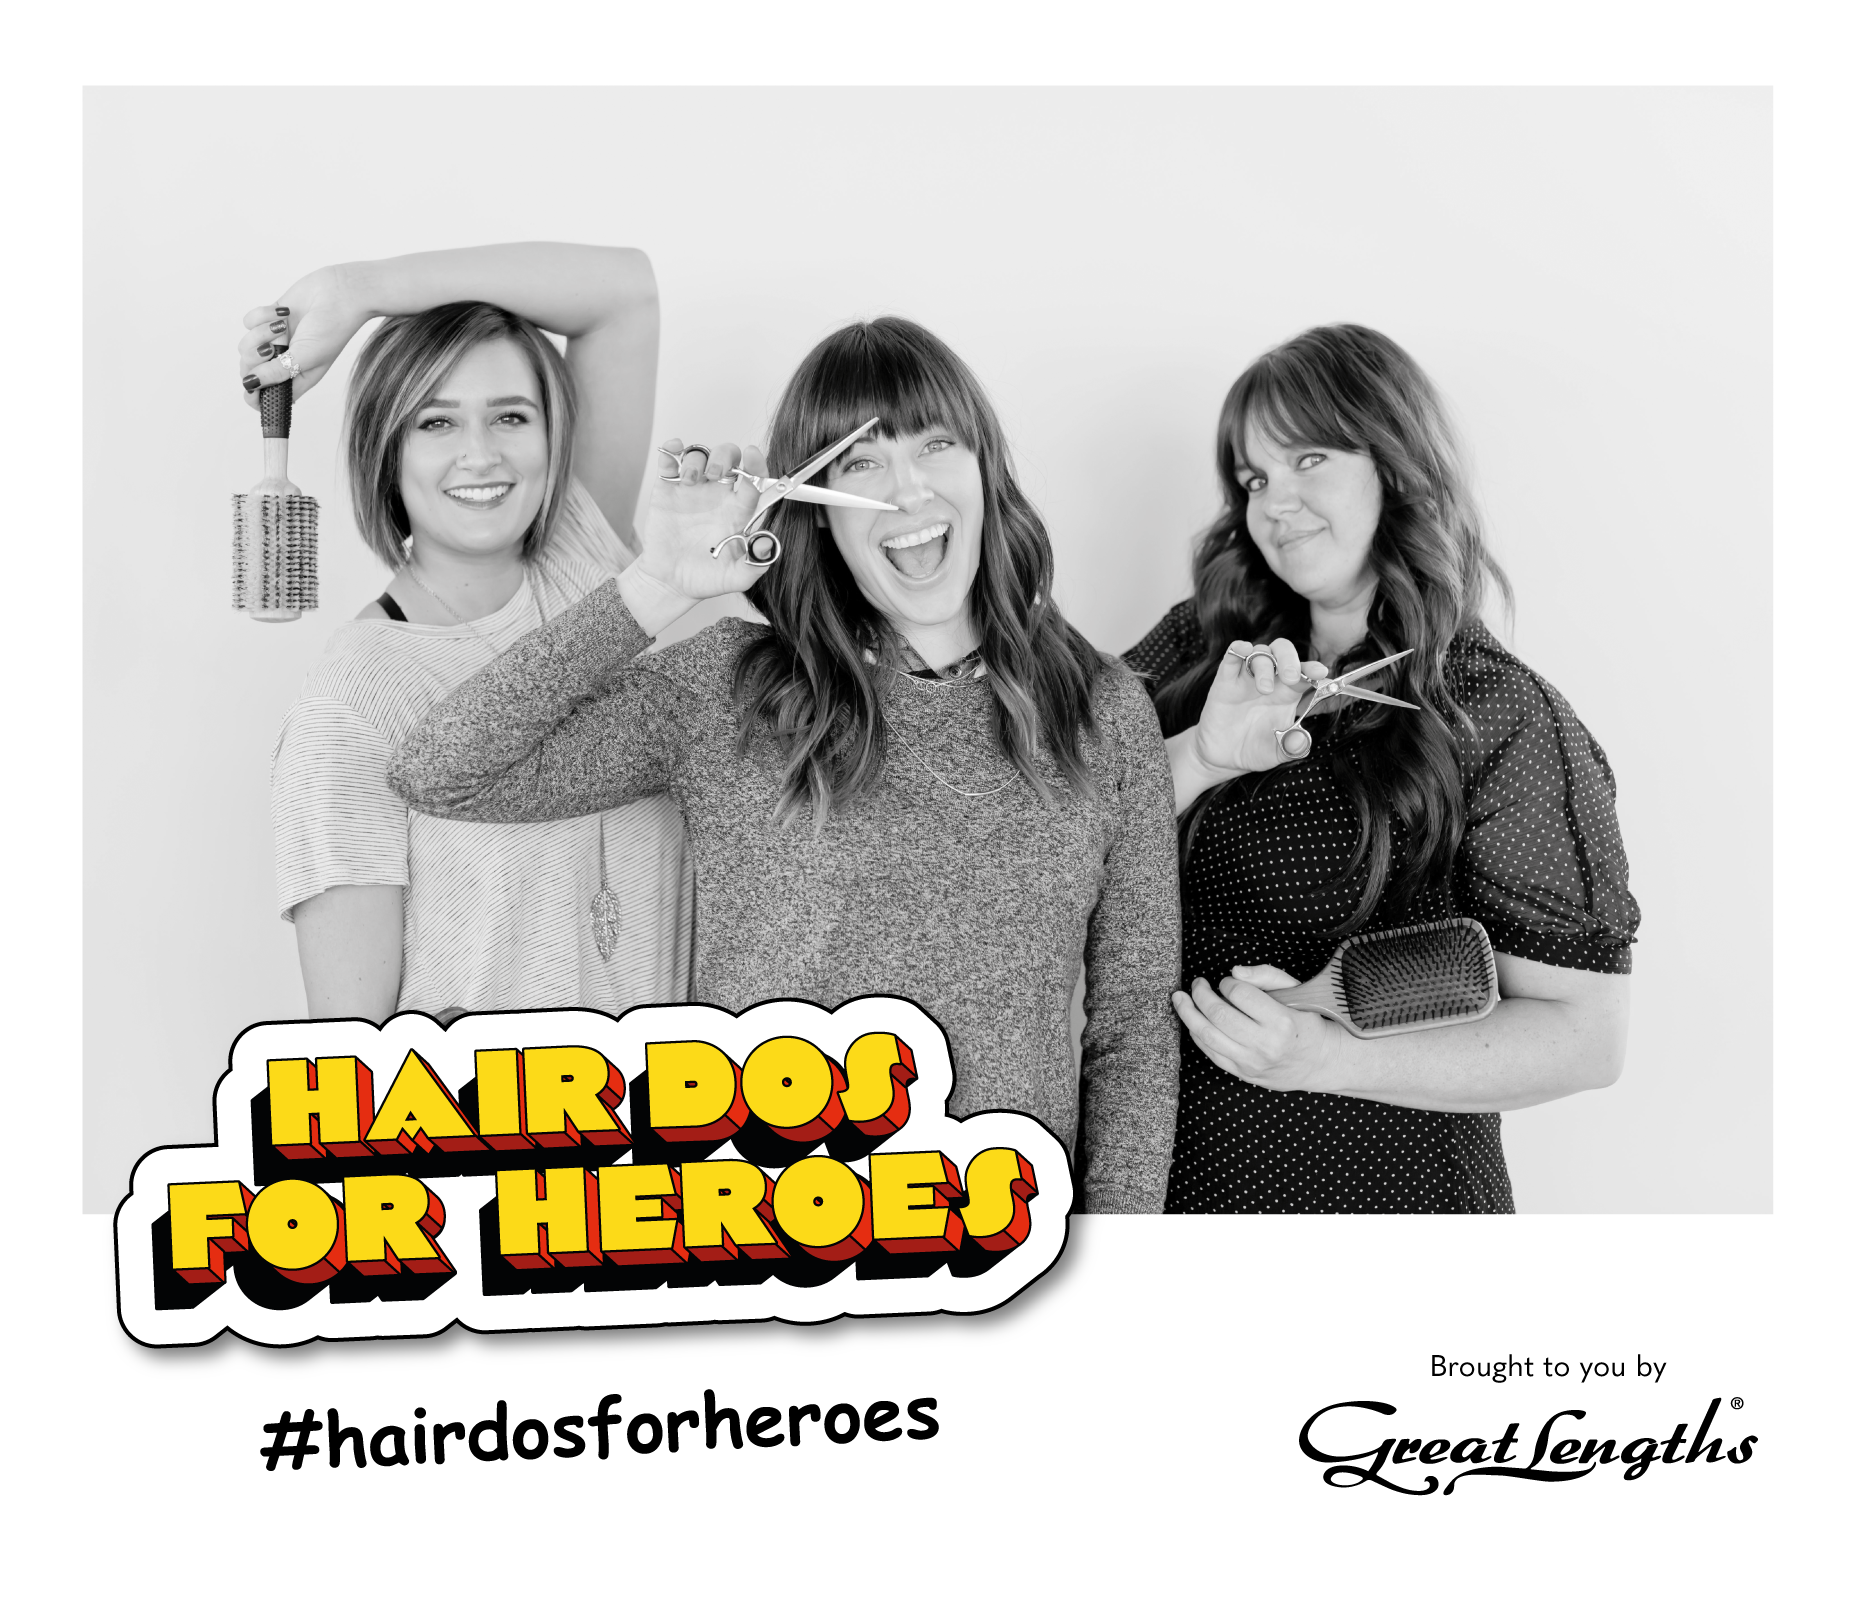 Hairdos_for_Heroes_social_1